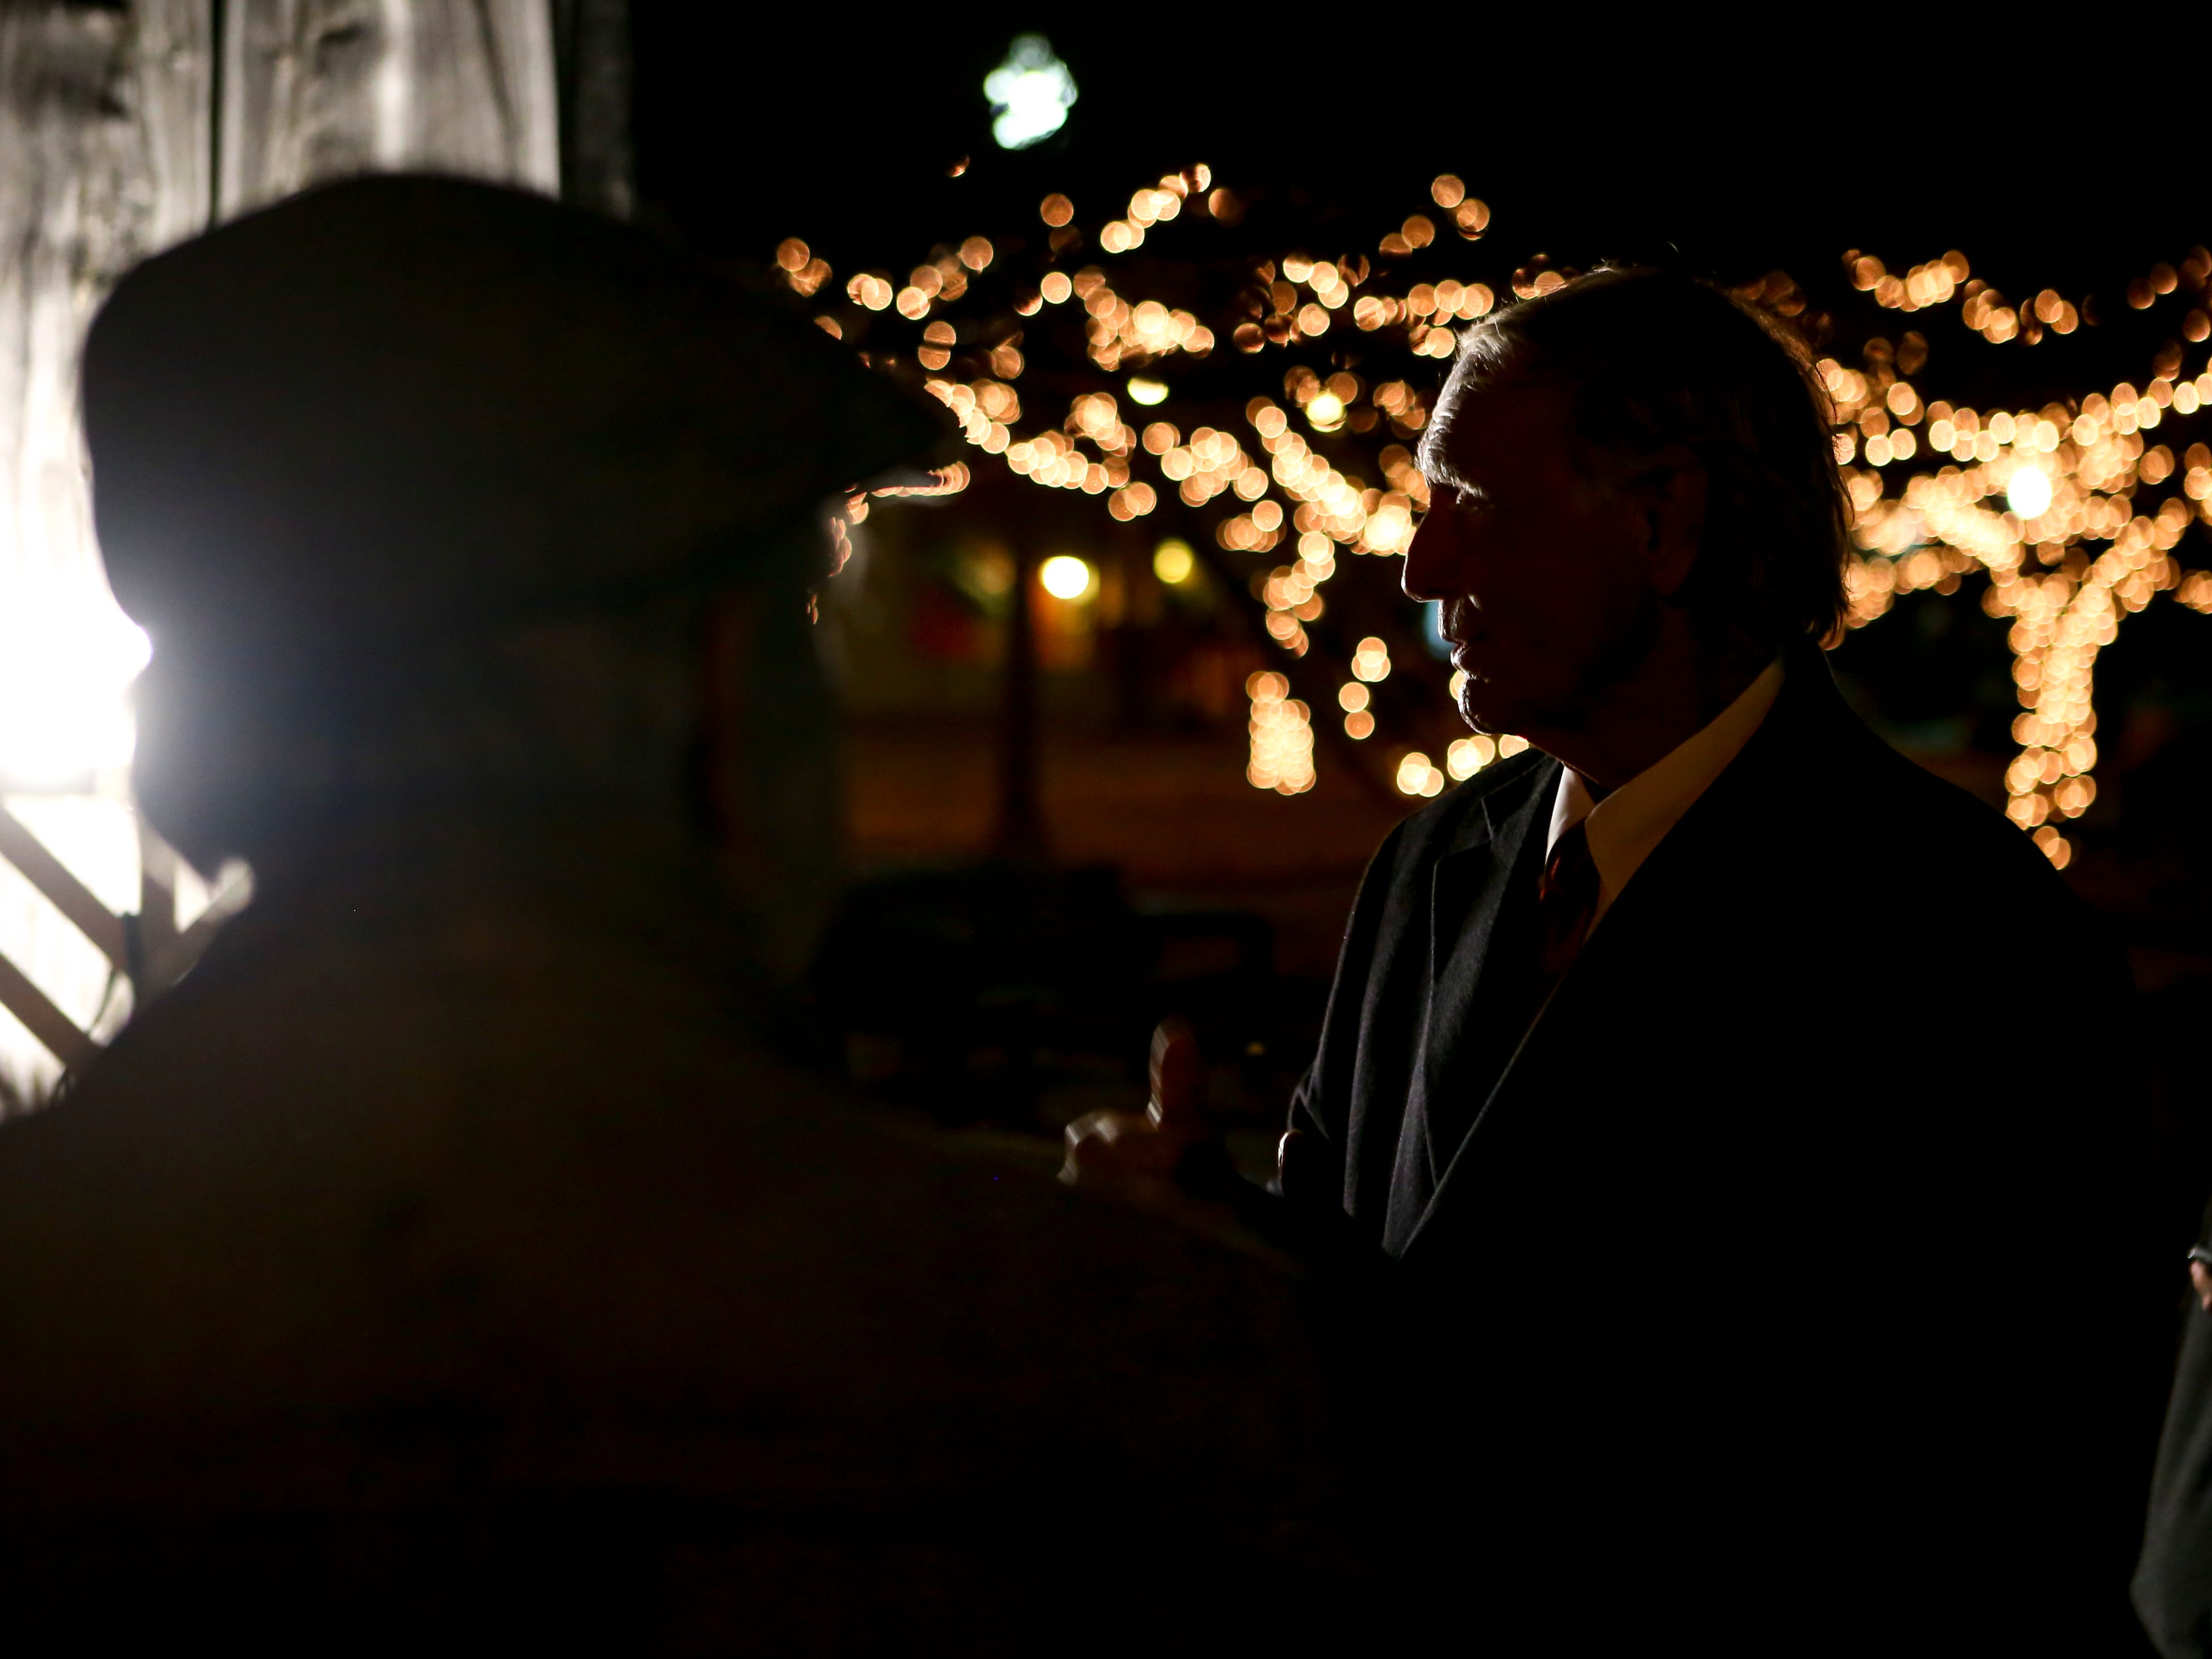 Jackson City Mayor Jerry Gist looks on after the lighting ceremony of the menorah during the first public Chanukah Menorah Lighting at Anderson Park in Jackson, Tenn., on Thursday, Dec. 6, 2018.